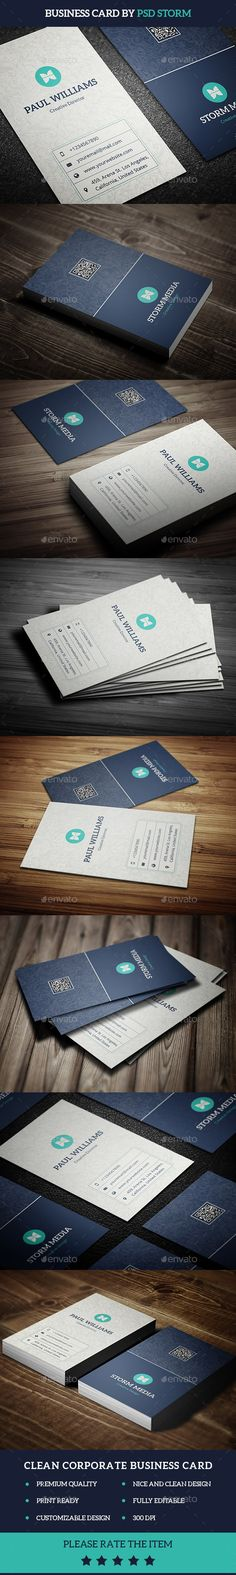 Clean Corporate Business Card - Corporate Business Cards Download here : http://graphicriver.net/item/-clean-corporate-business-card/12007503?s_rank=1776&ref=Al-fatih